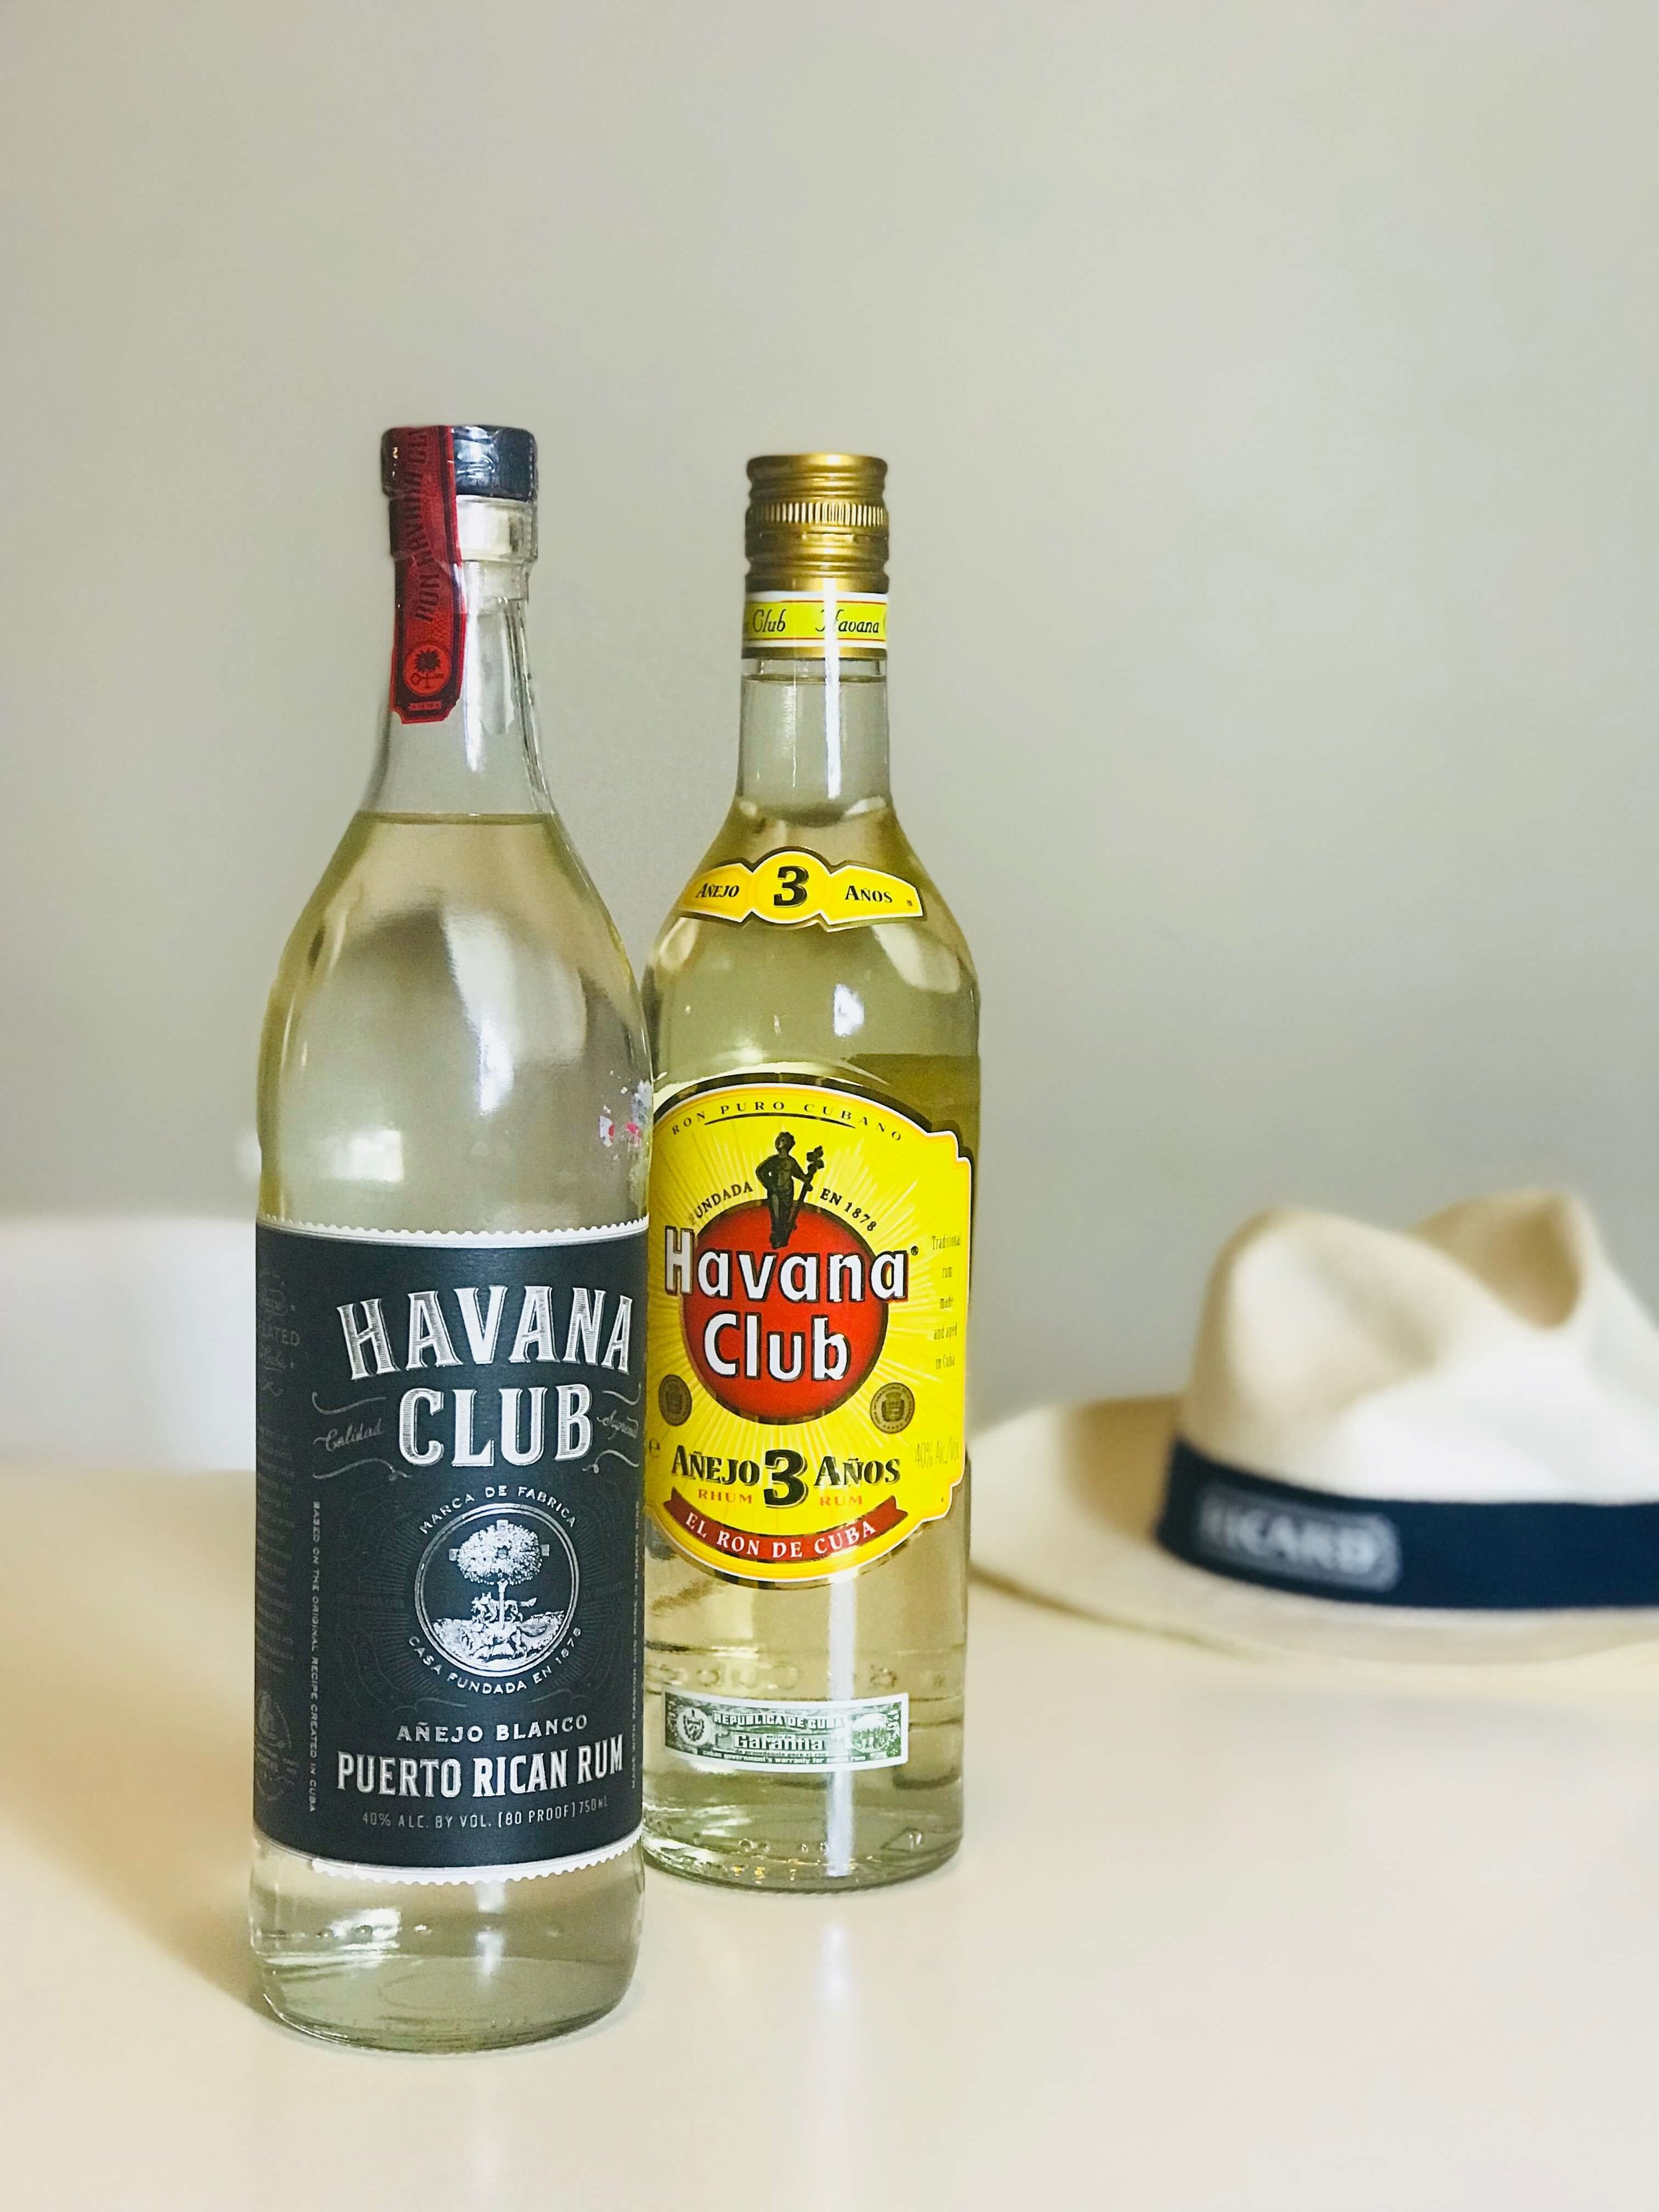 Havana Club rum, what's the difference?